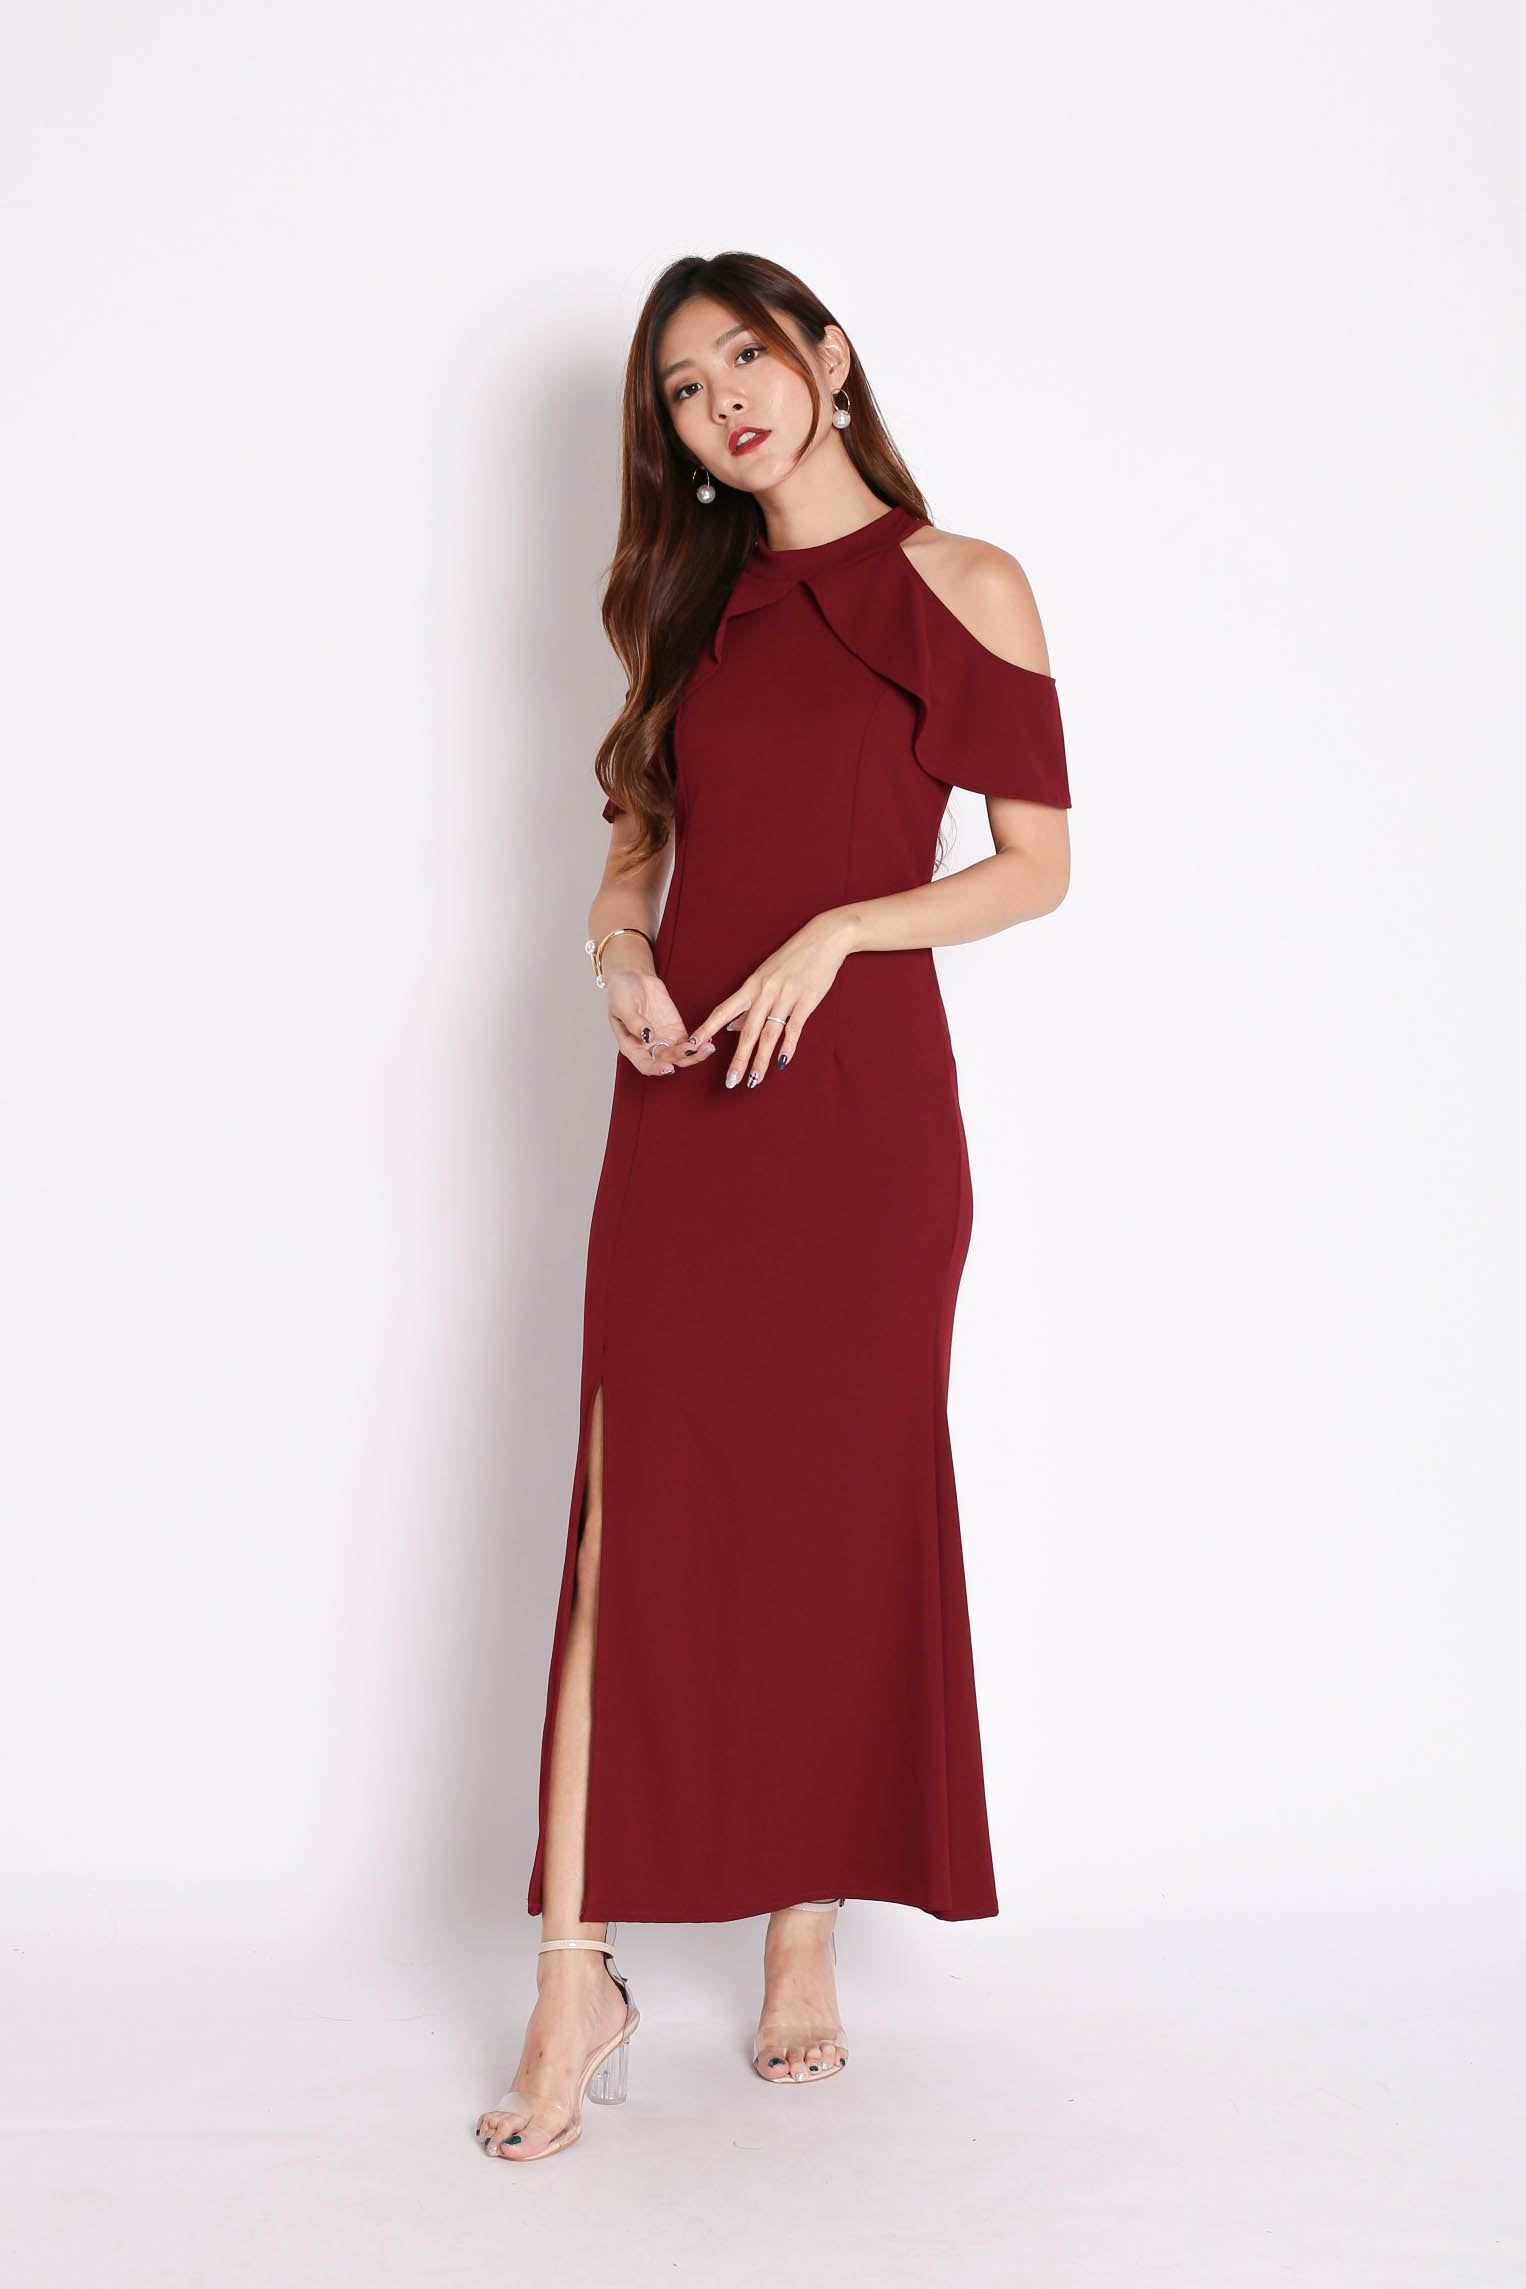 DILYS RUFFLES TWO WAYS DRESS IN BURGUNDY